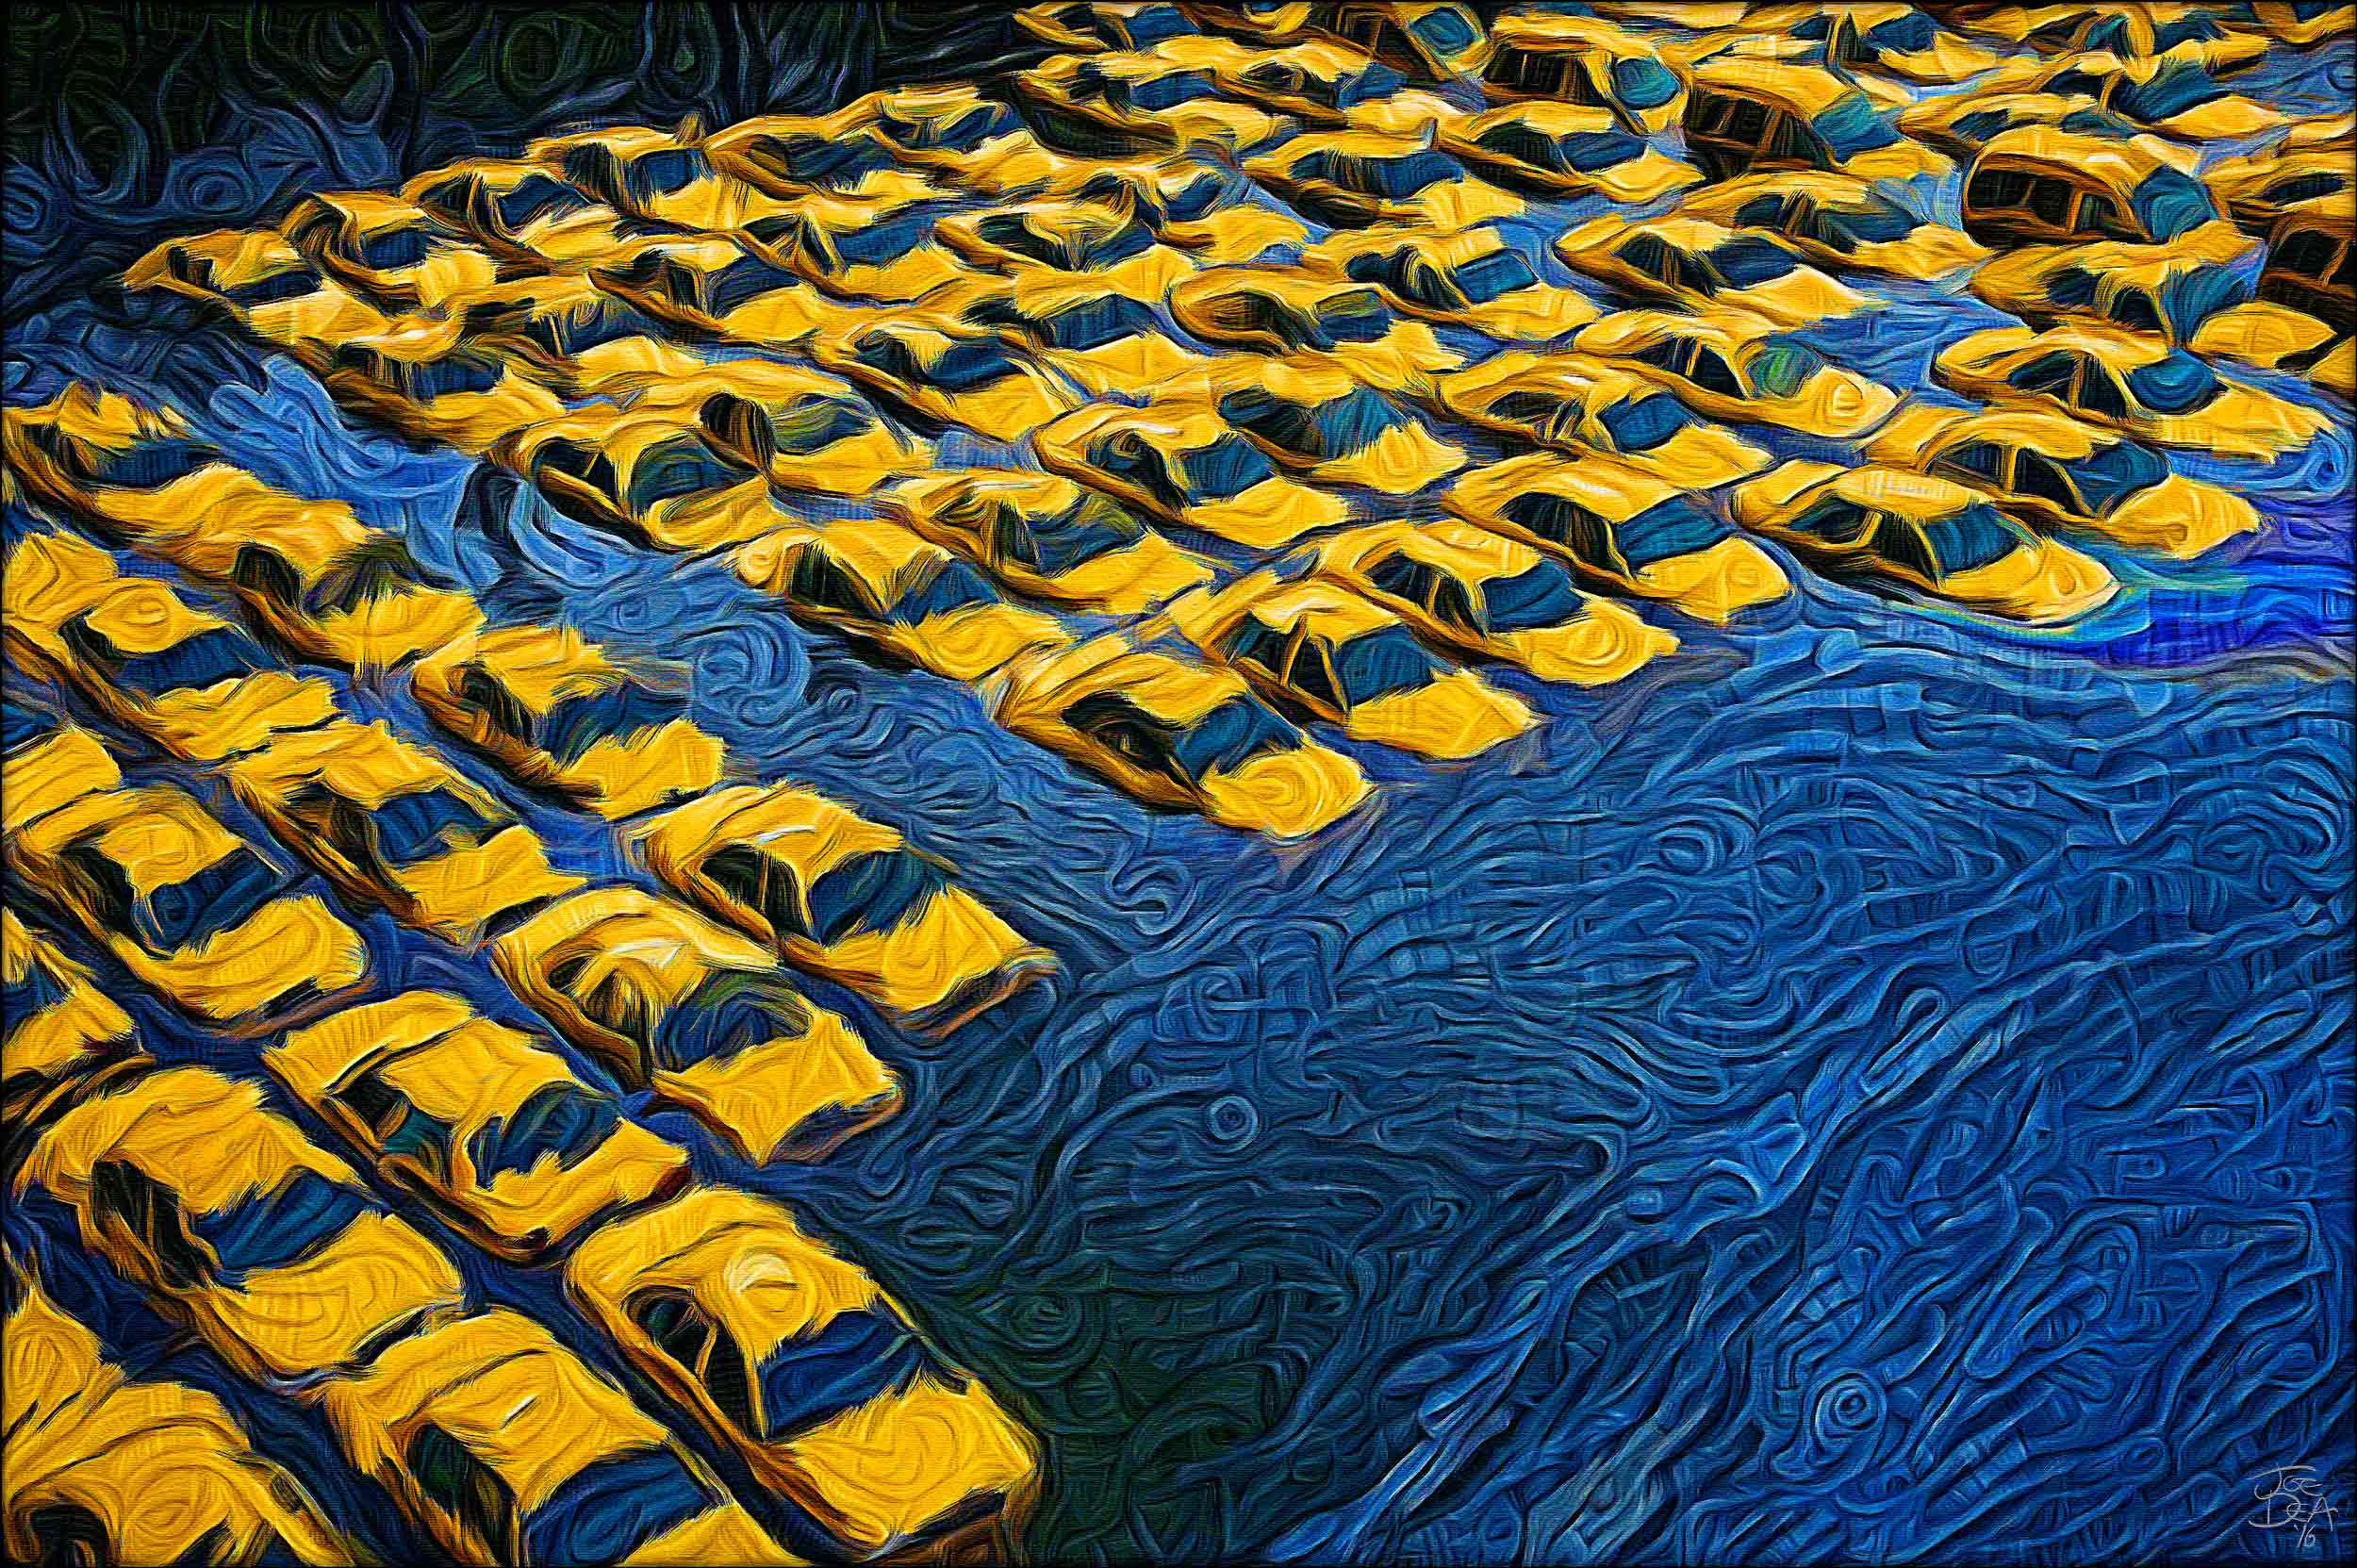 Hurricane Sandy - Submerged Taxis